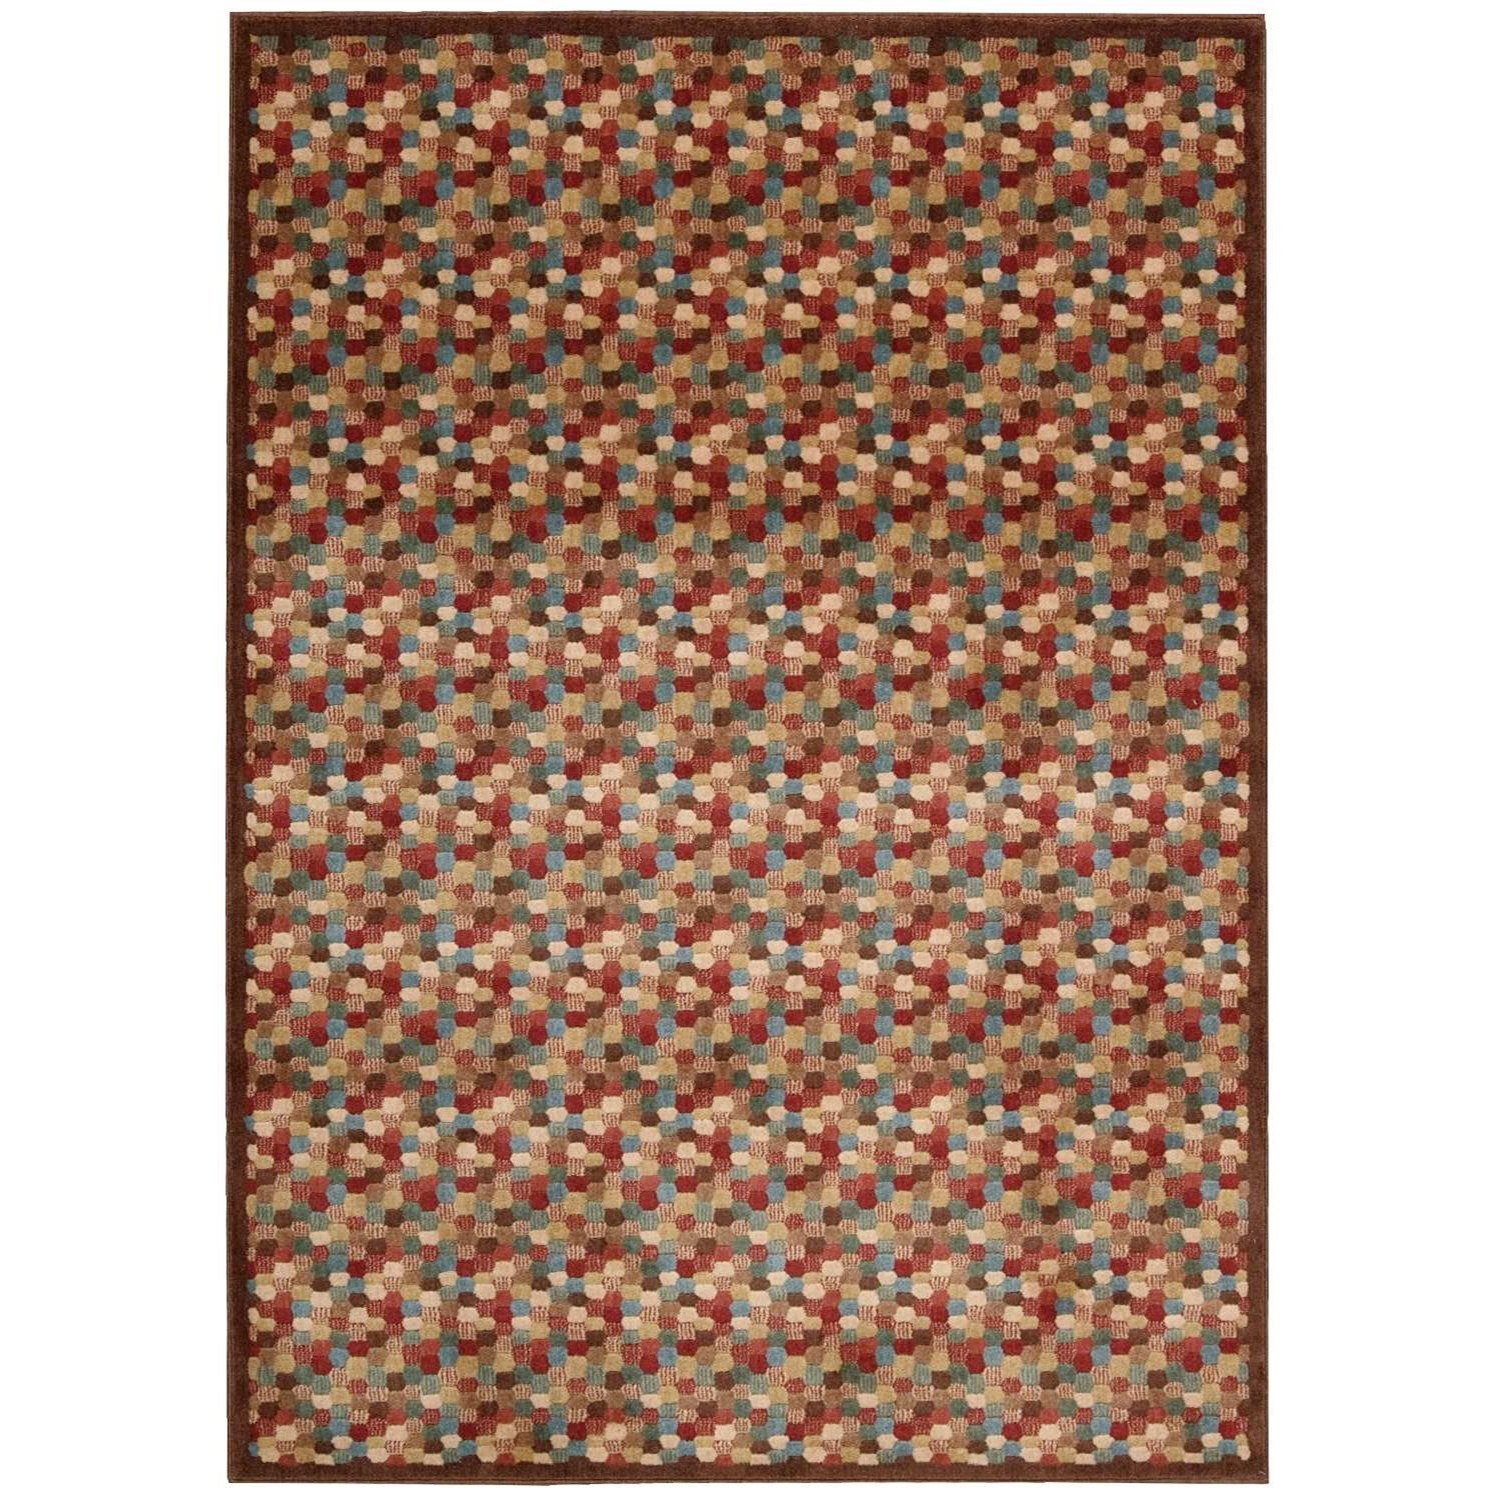 "3'6"" x 5'6"" Multicolor Rectangle Rug"